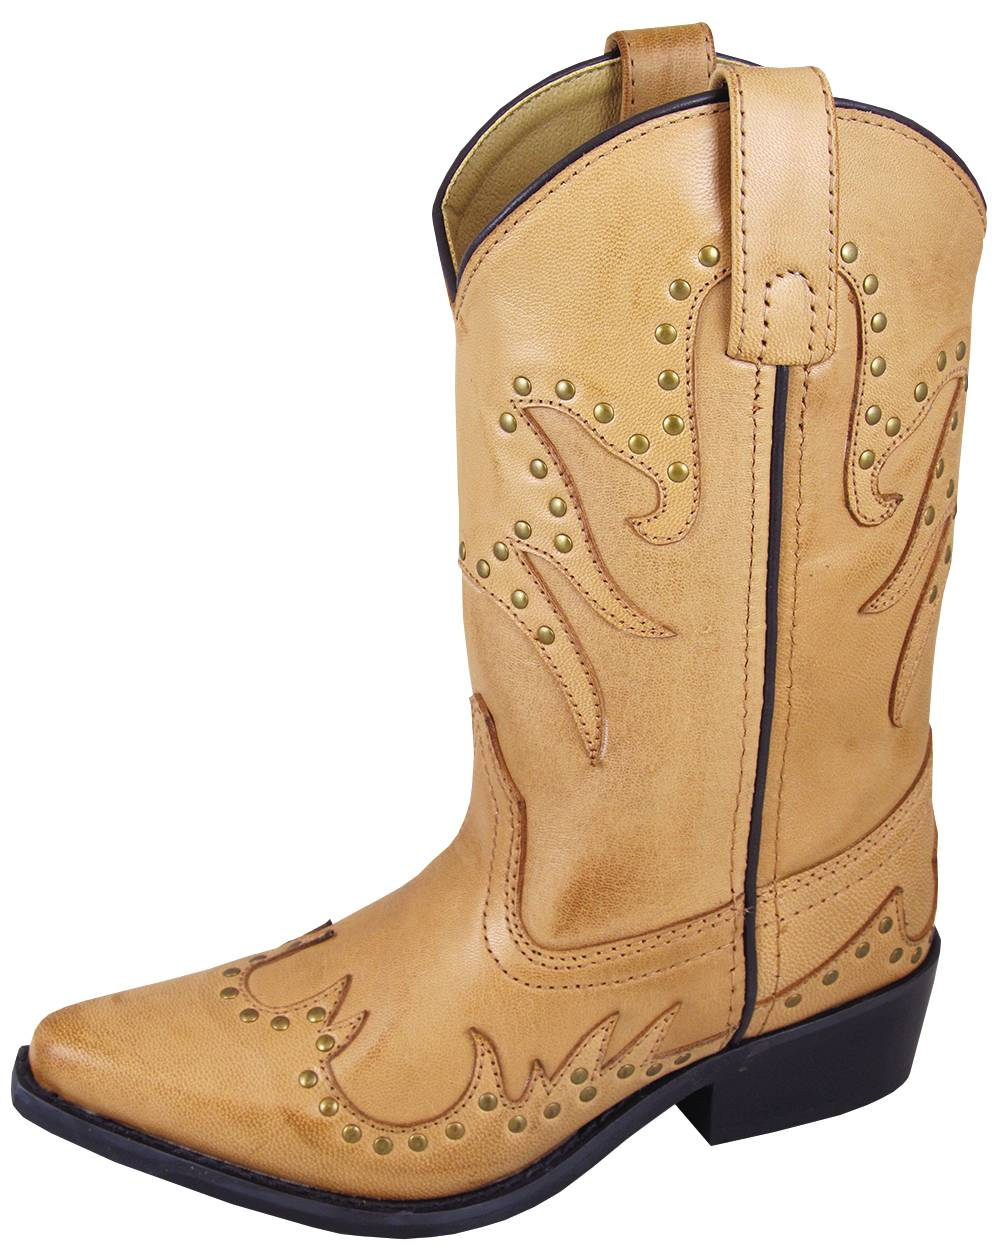 Smoky Mountain Youth Dolly Boots - Tan